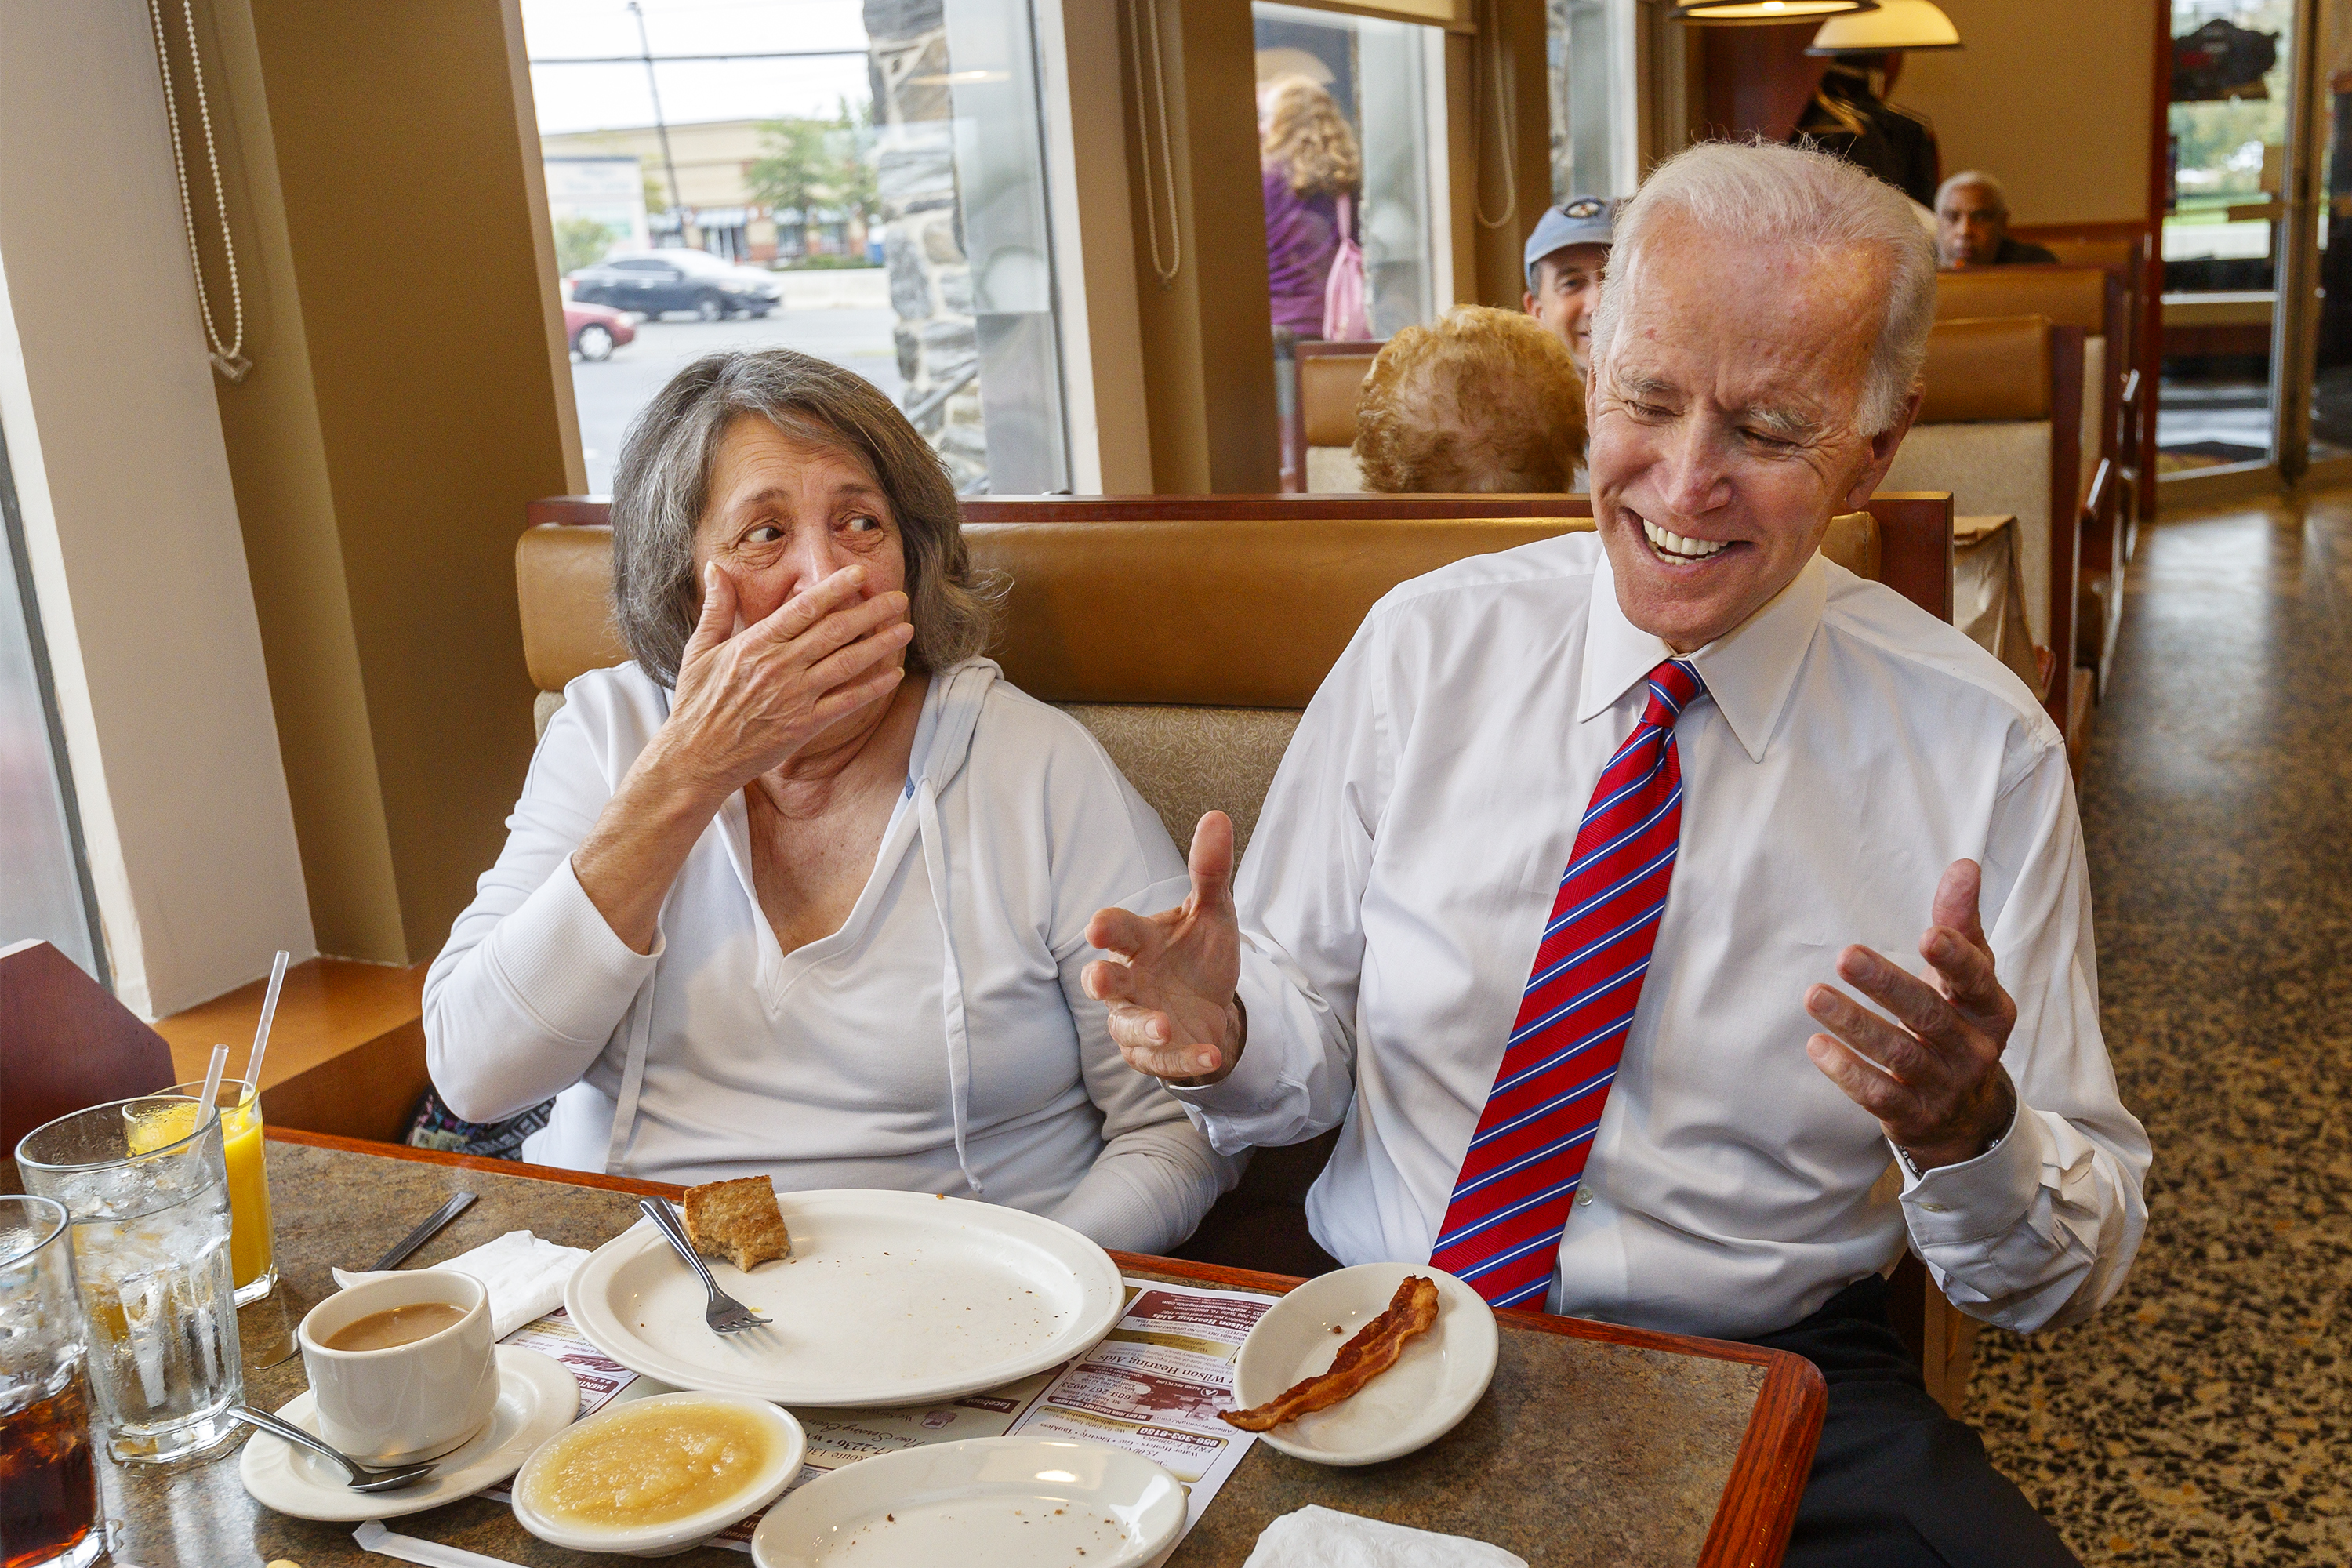 Former vice president Joe Biden, right, makes Phyllis Ponisciak, left, laugh as he visits with her and her husband, Joe, in the Golden Dawn Diner in Willingsboro, NJ, as he campaigns for Andy Kim, who´s locked in a tight race for a Congressional seat against incumbent Tom MacArthur